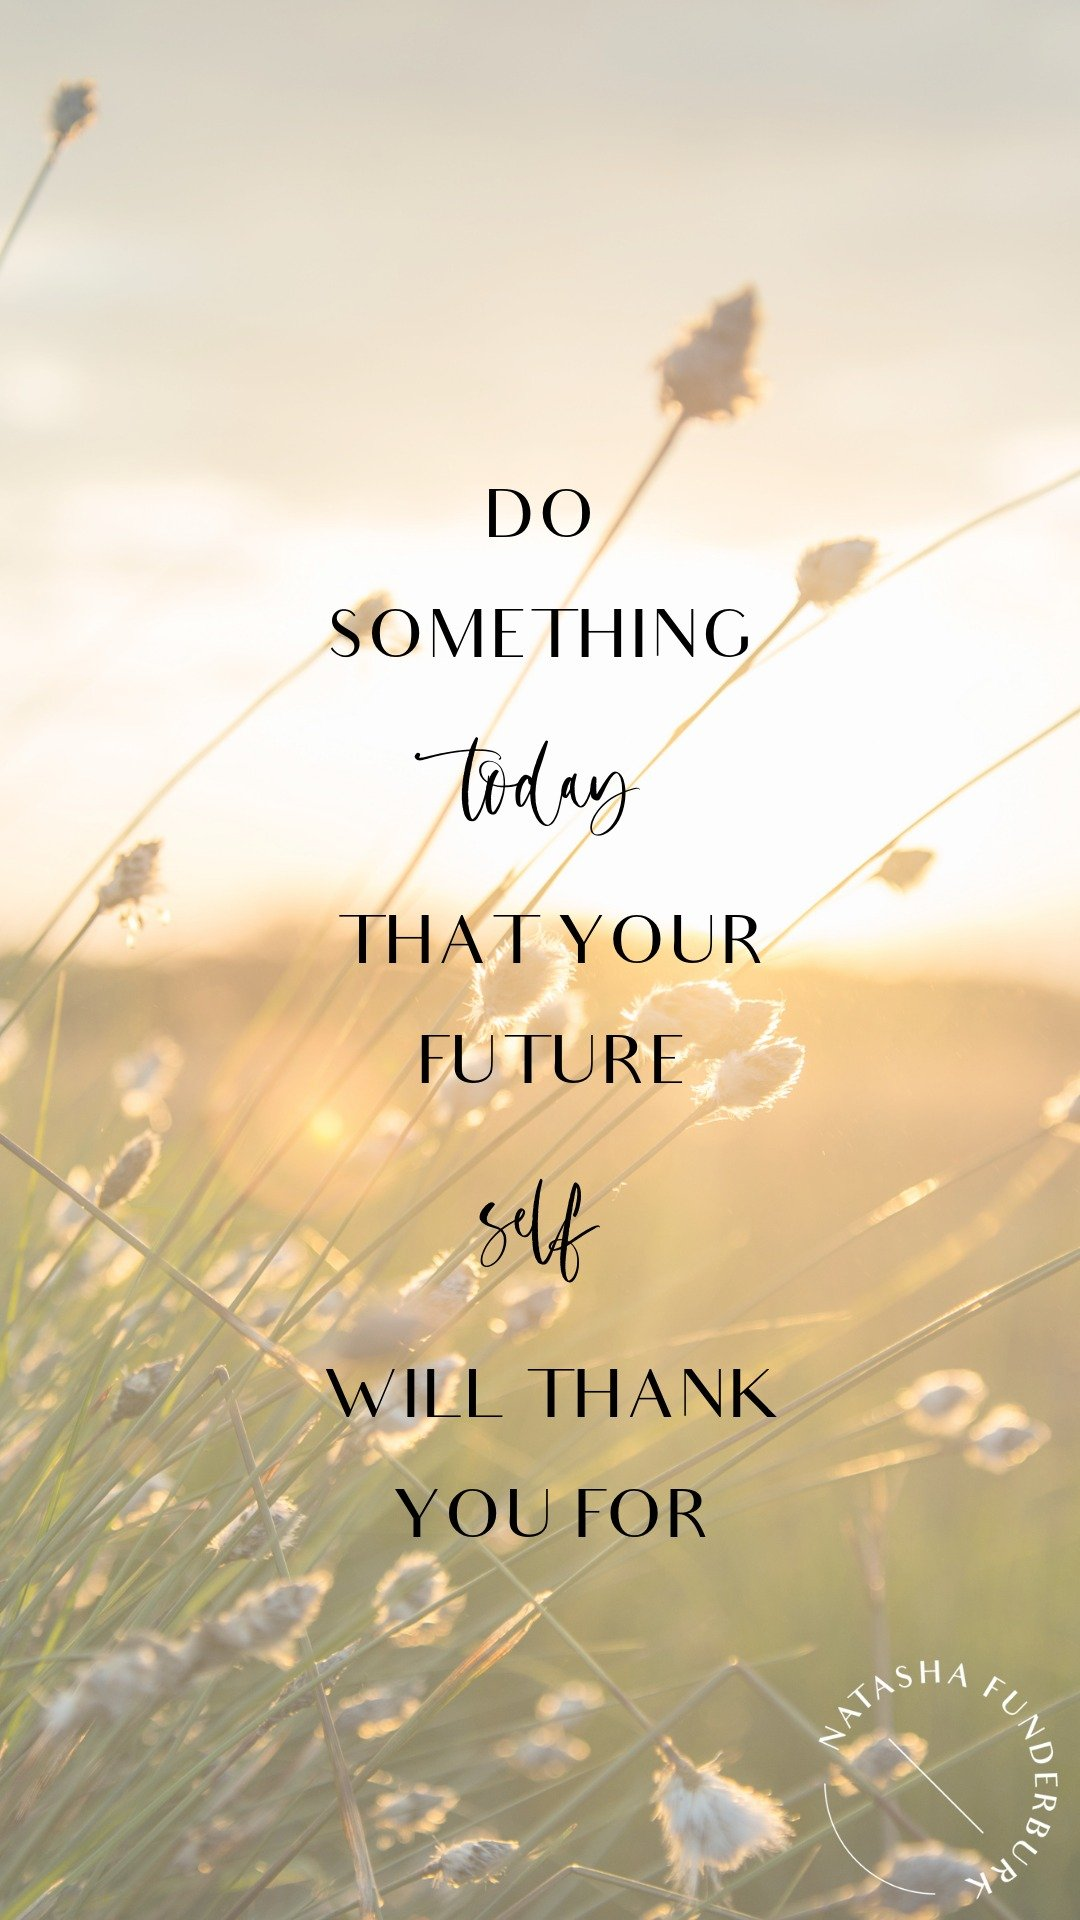 do something today your future self with thank you for